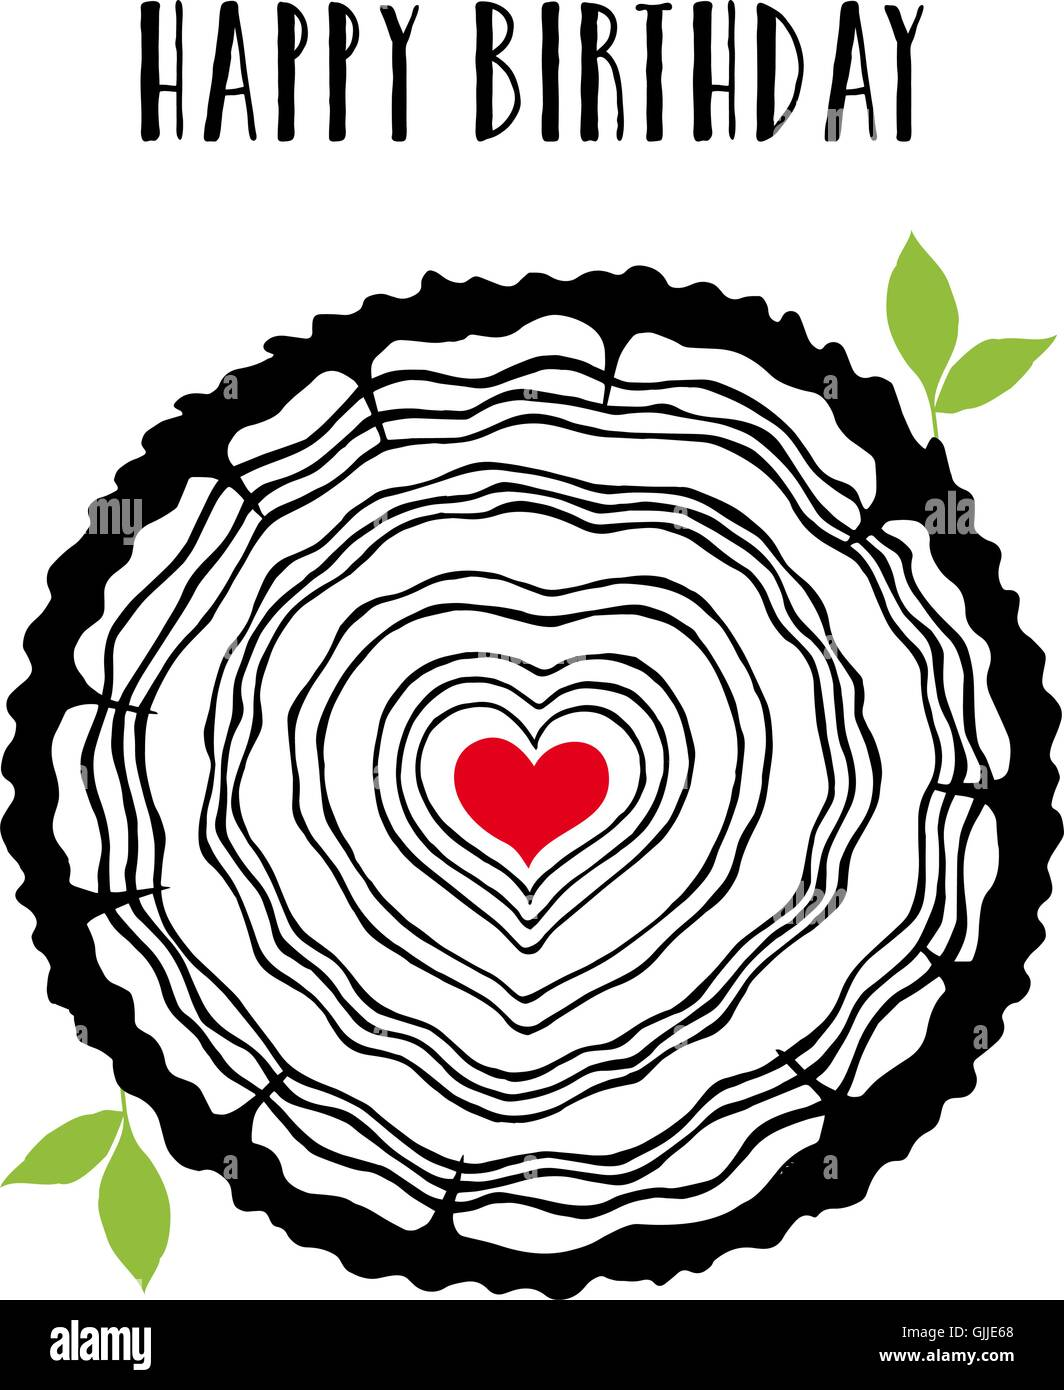 Happy birthday card with tree rings, leaves and red heart, vector illustration - Stock Image